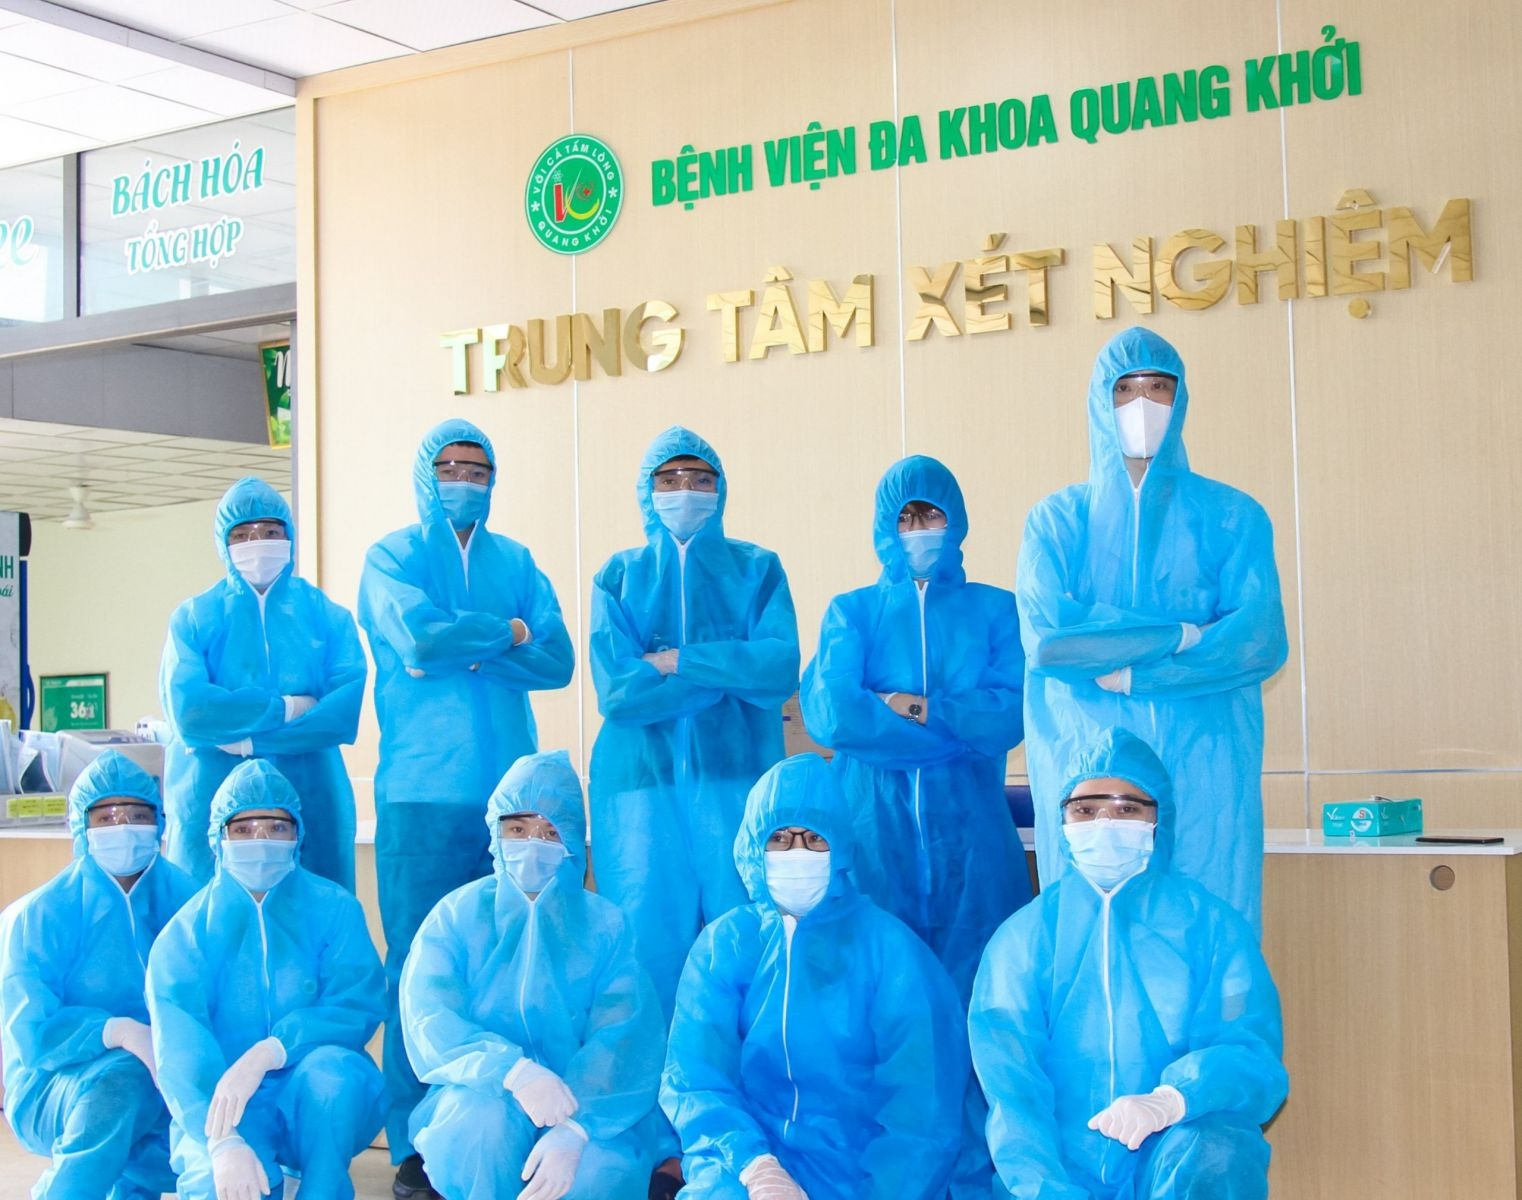 Quang Khoi General Hospital among centres qualifying for COVID-19 test confirmation